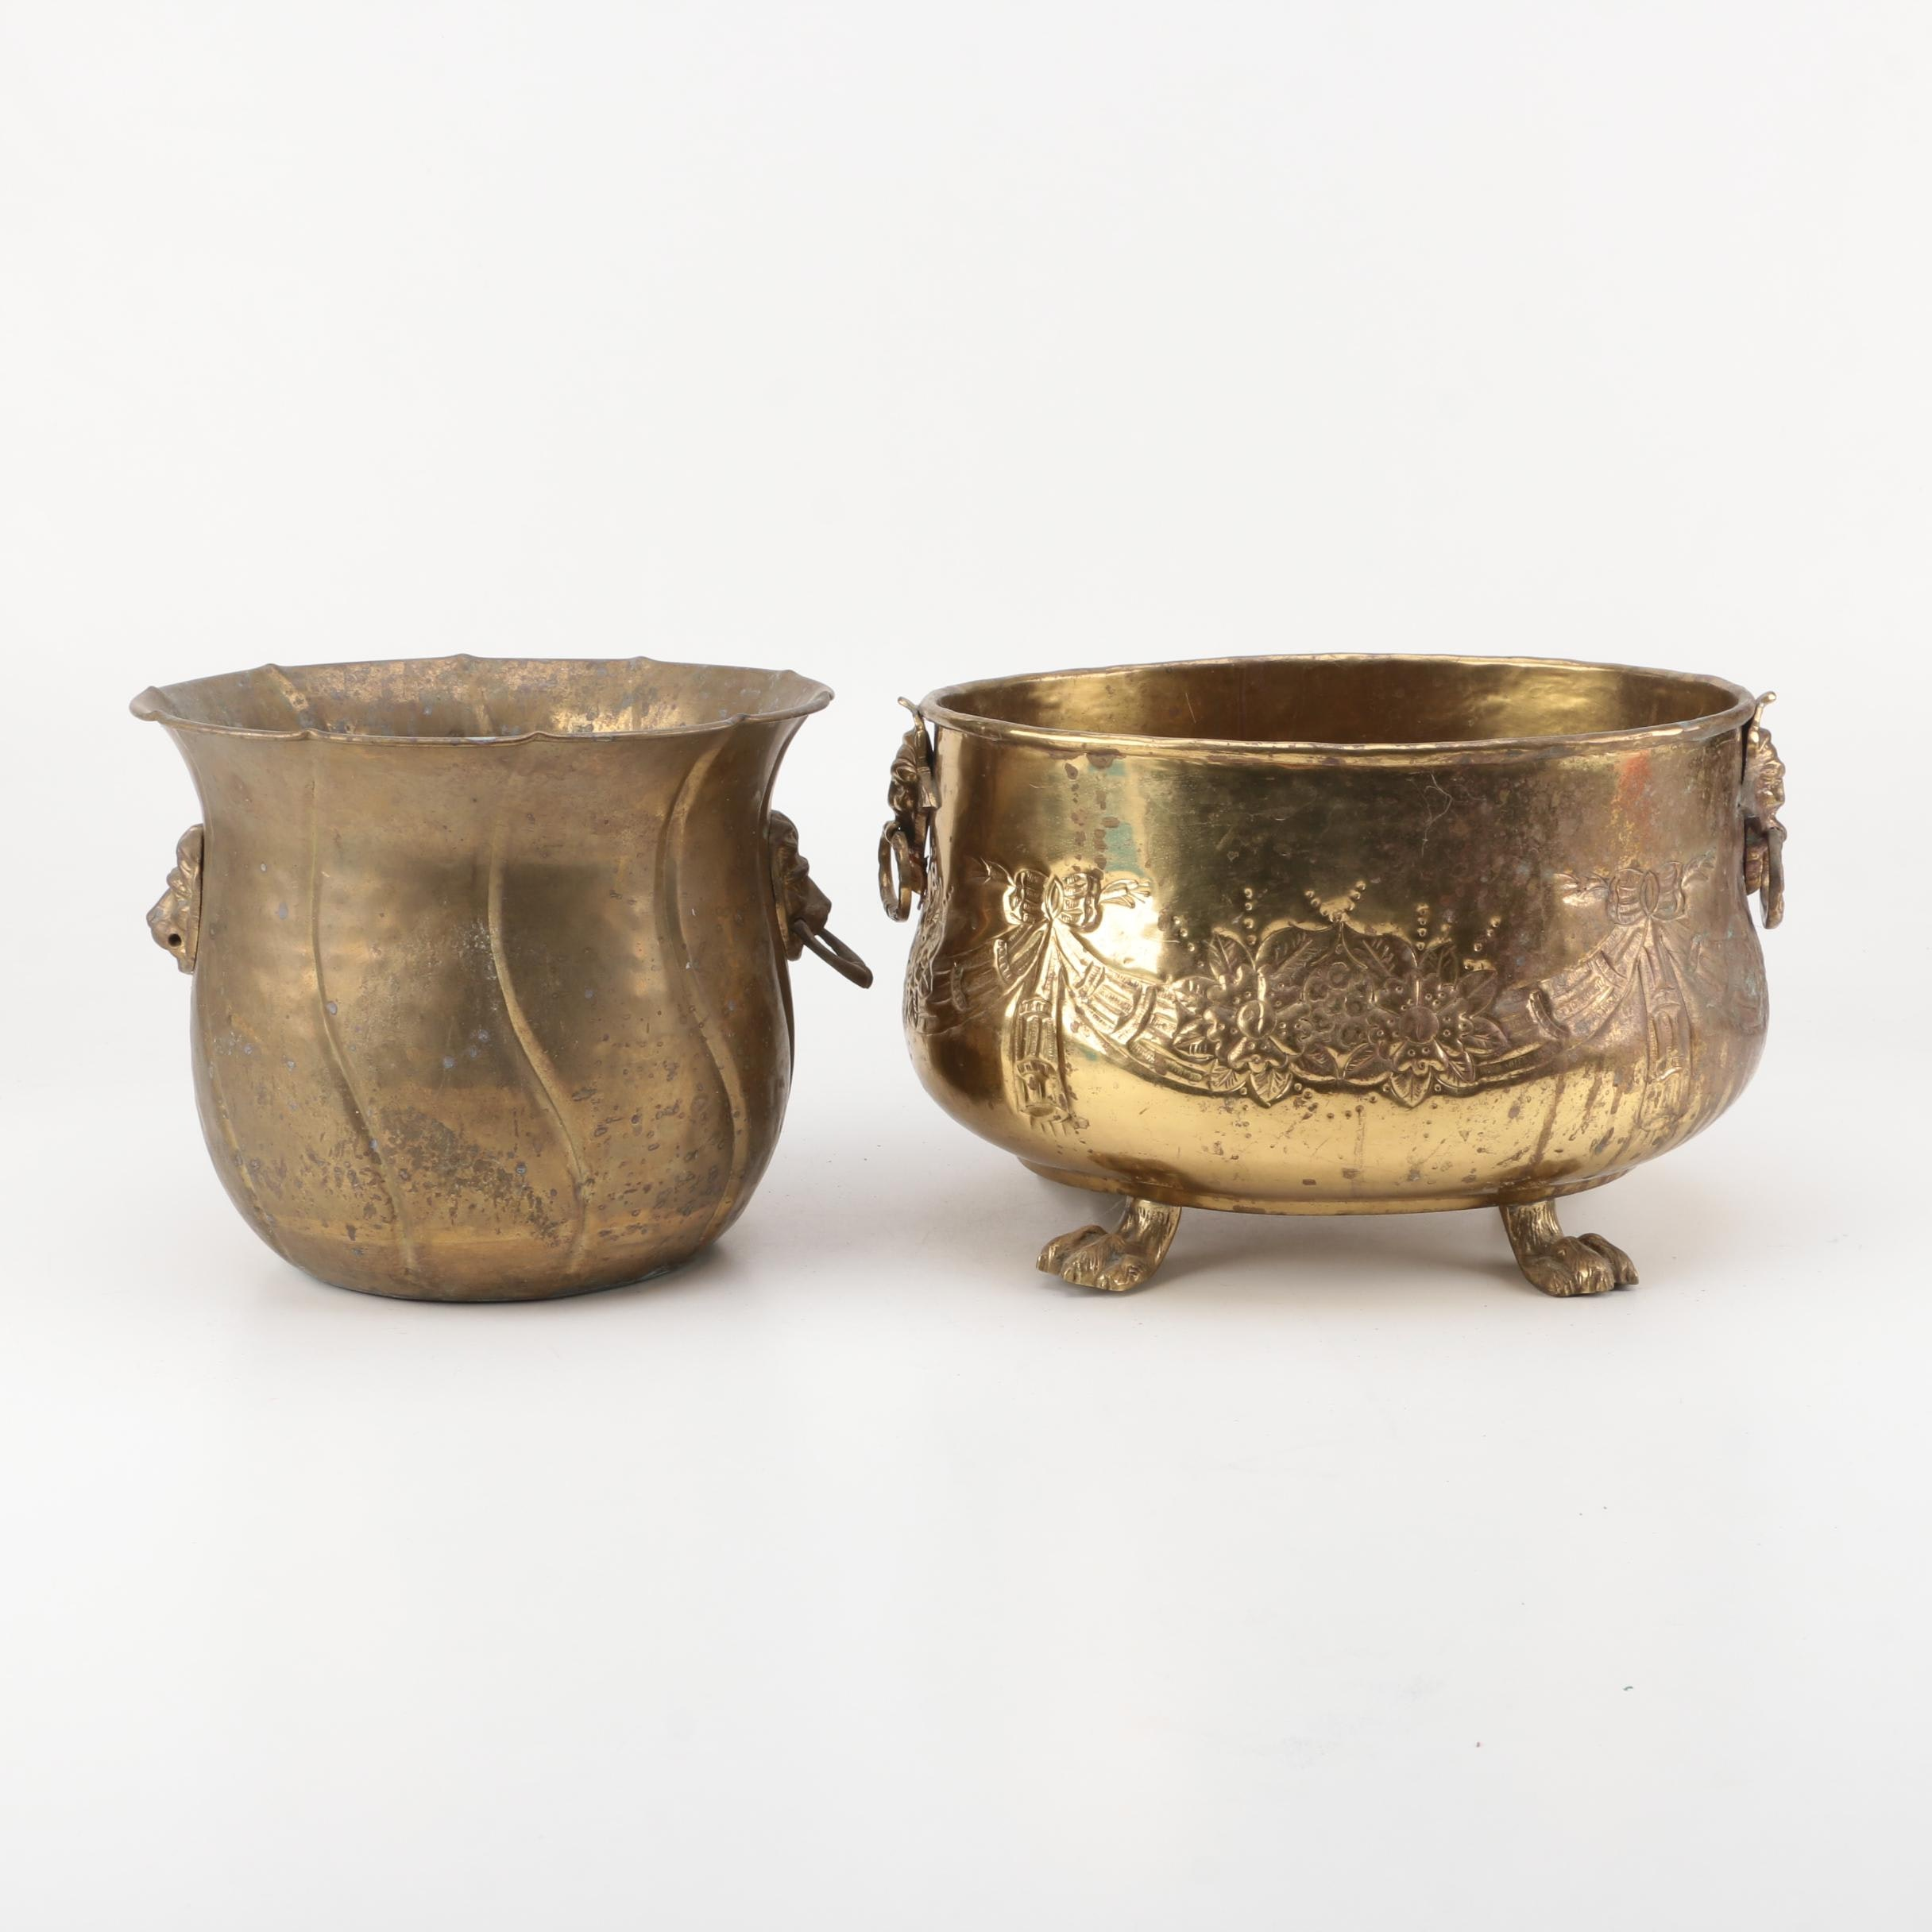 Decorative Brass Pots